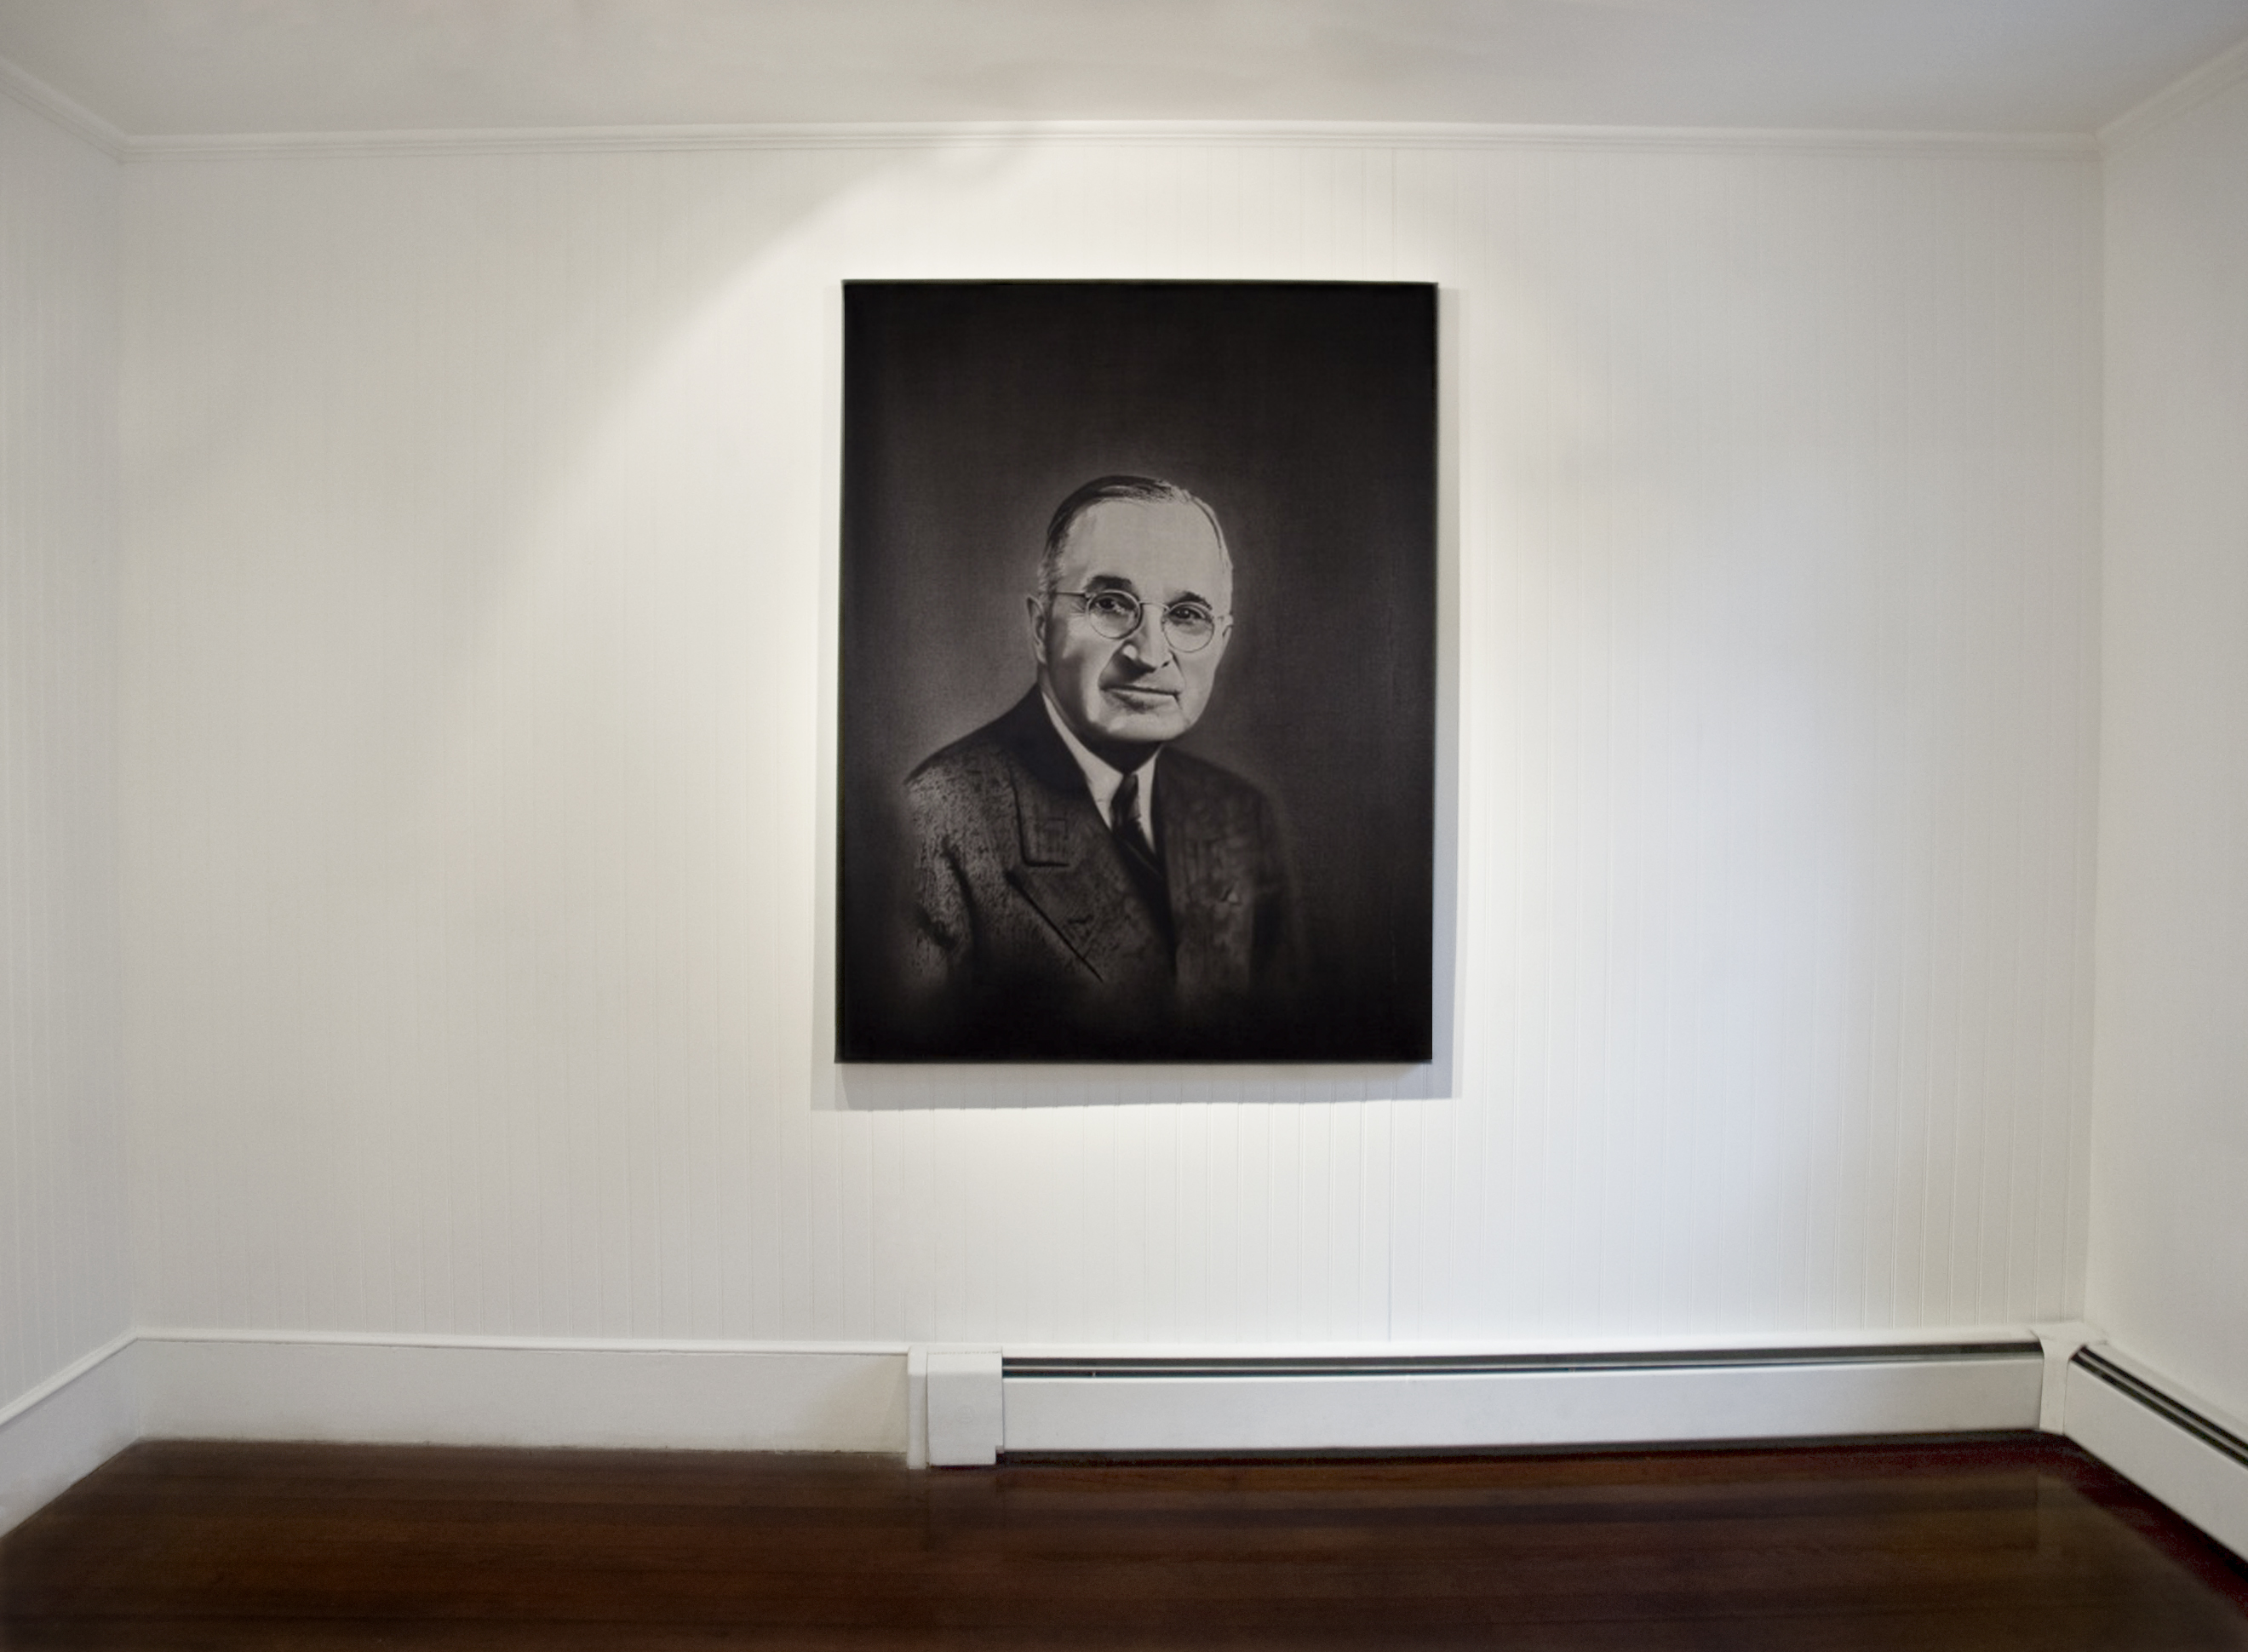 Sam Trioli, S. (Installation View), courtesy of the artist and Farm Project Space + Gallery